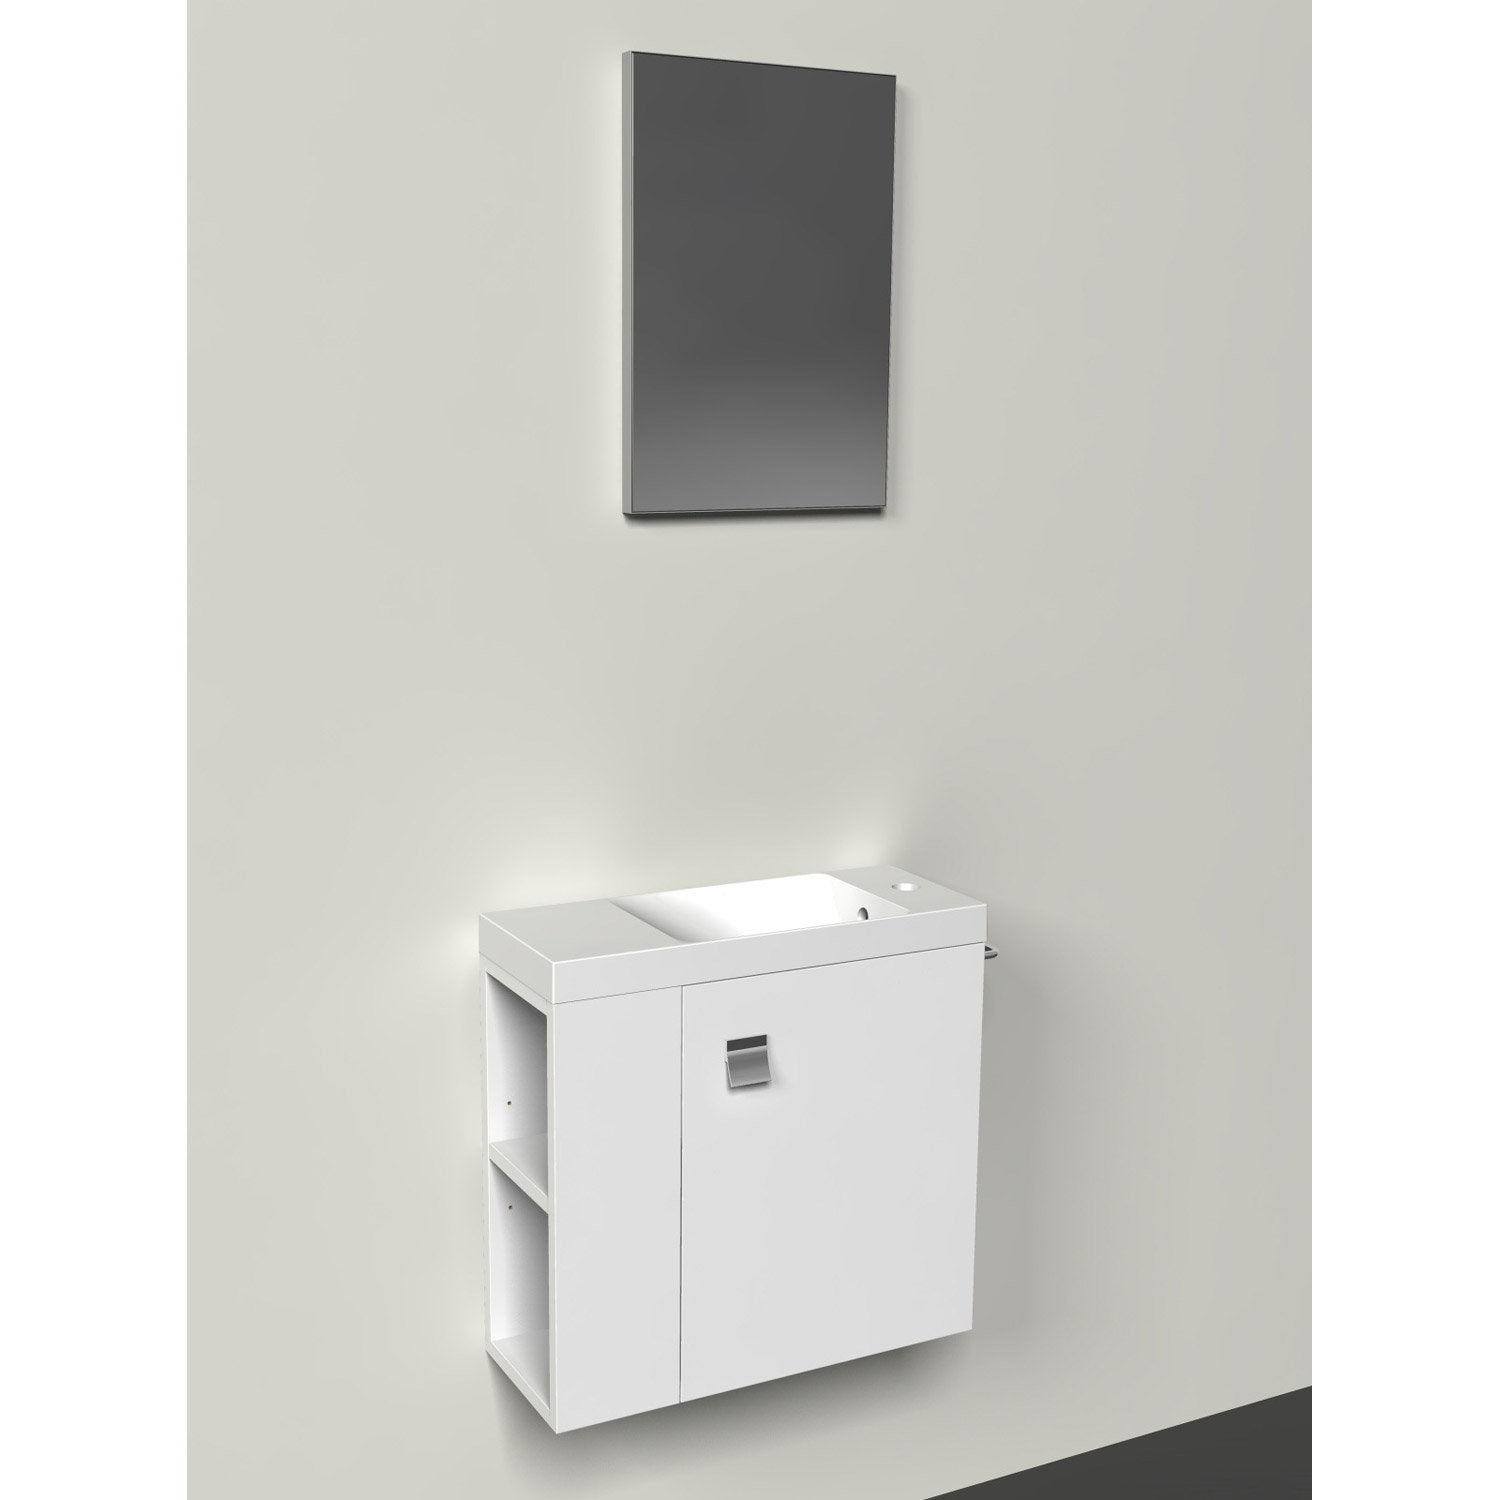 Meuble lave mains avec miroir slim blanc blanc n 0 for Meuble suspendu leroy merlin